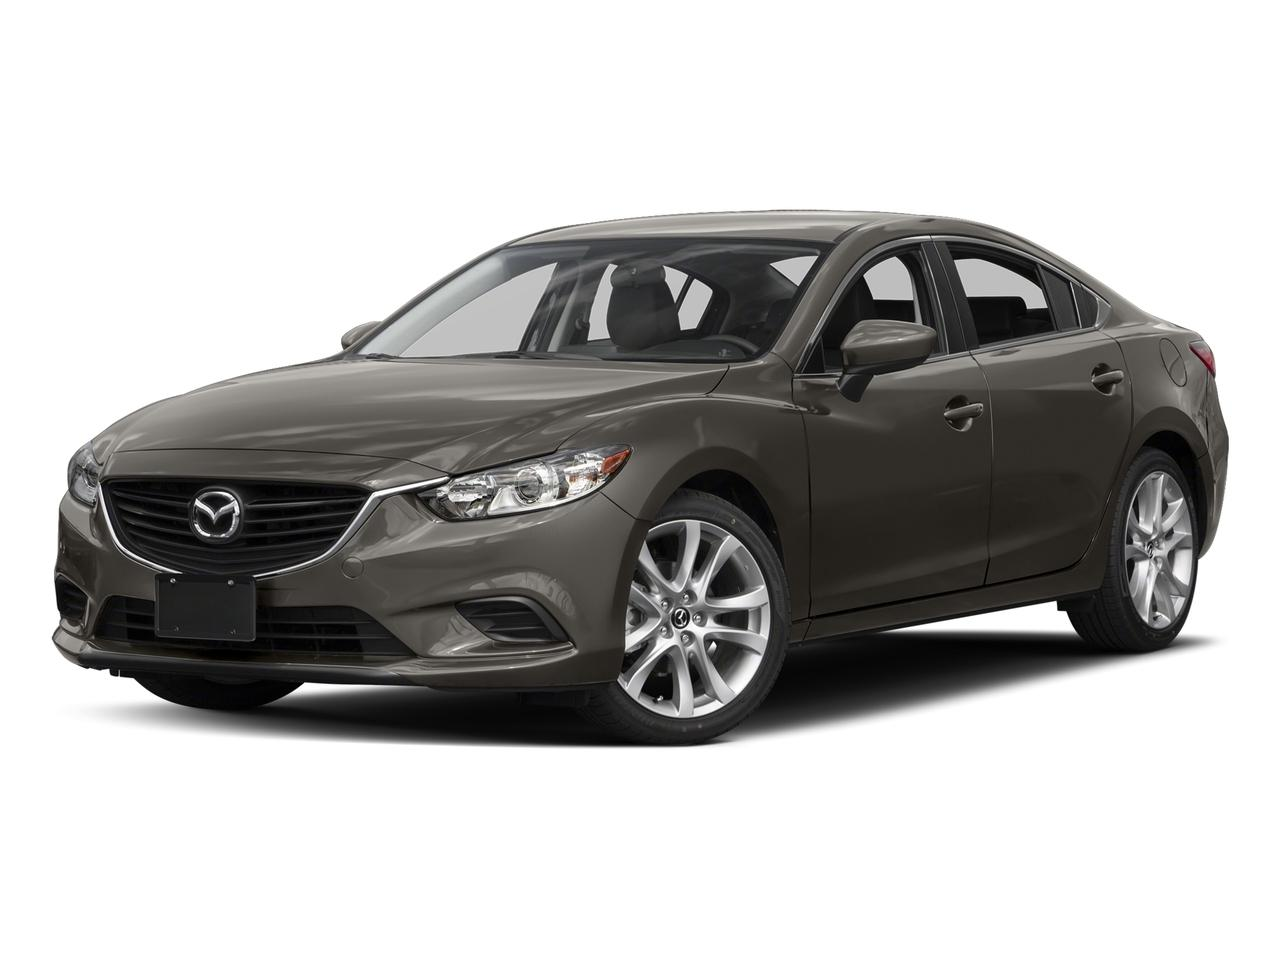 2016 Mazda Mazda6 Vehicle Photo in Grapevine, TX 76051